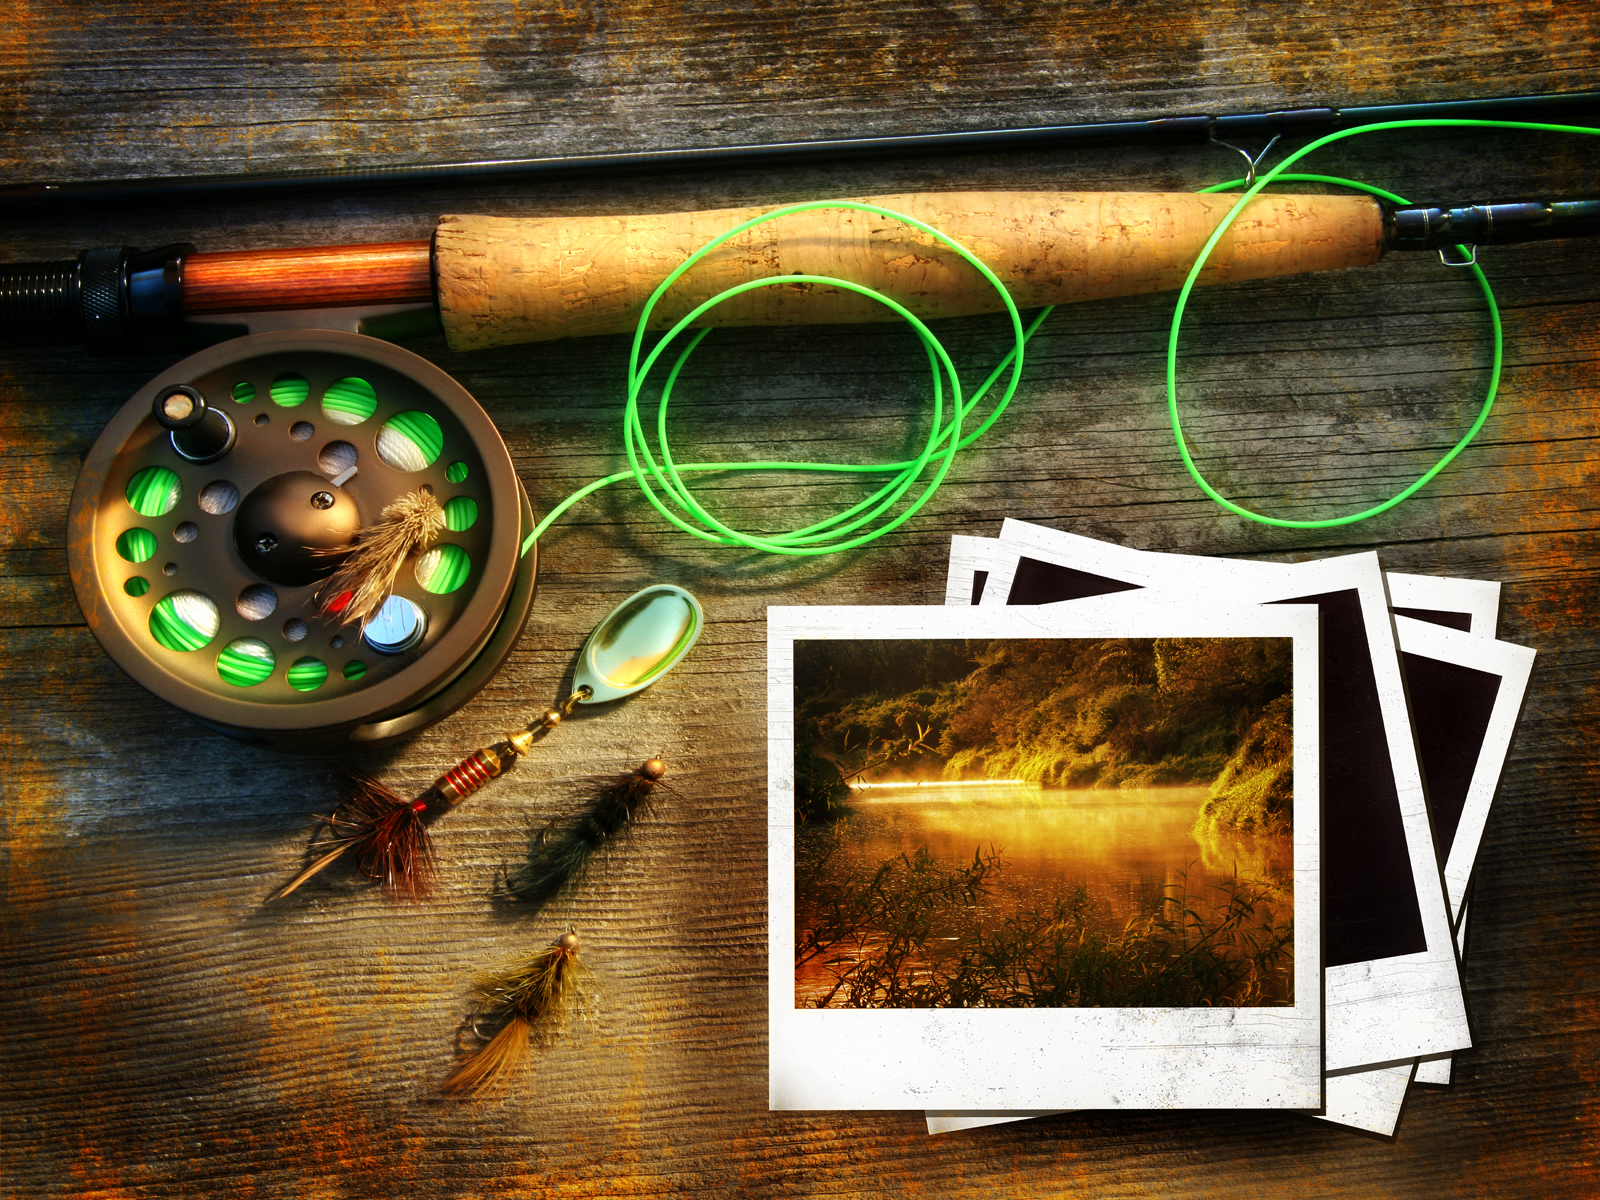 free wa11papers  Bowfishing Wallpaper